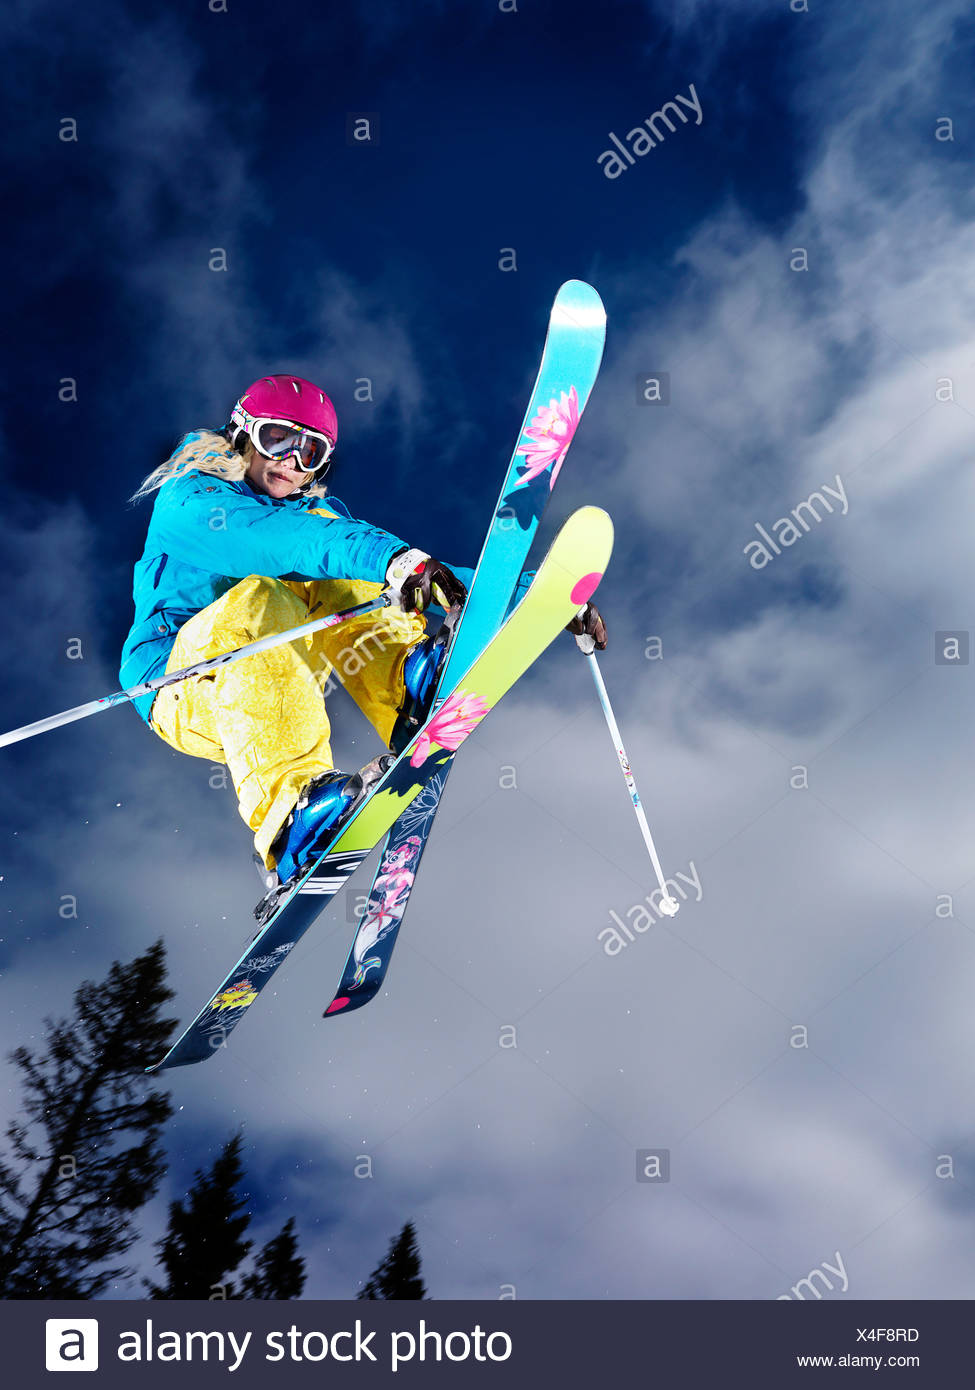 Girl doing a grab mid air. - Stock Image